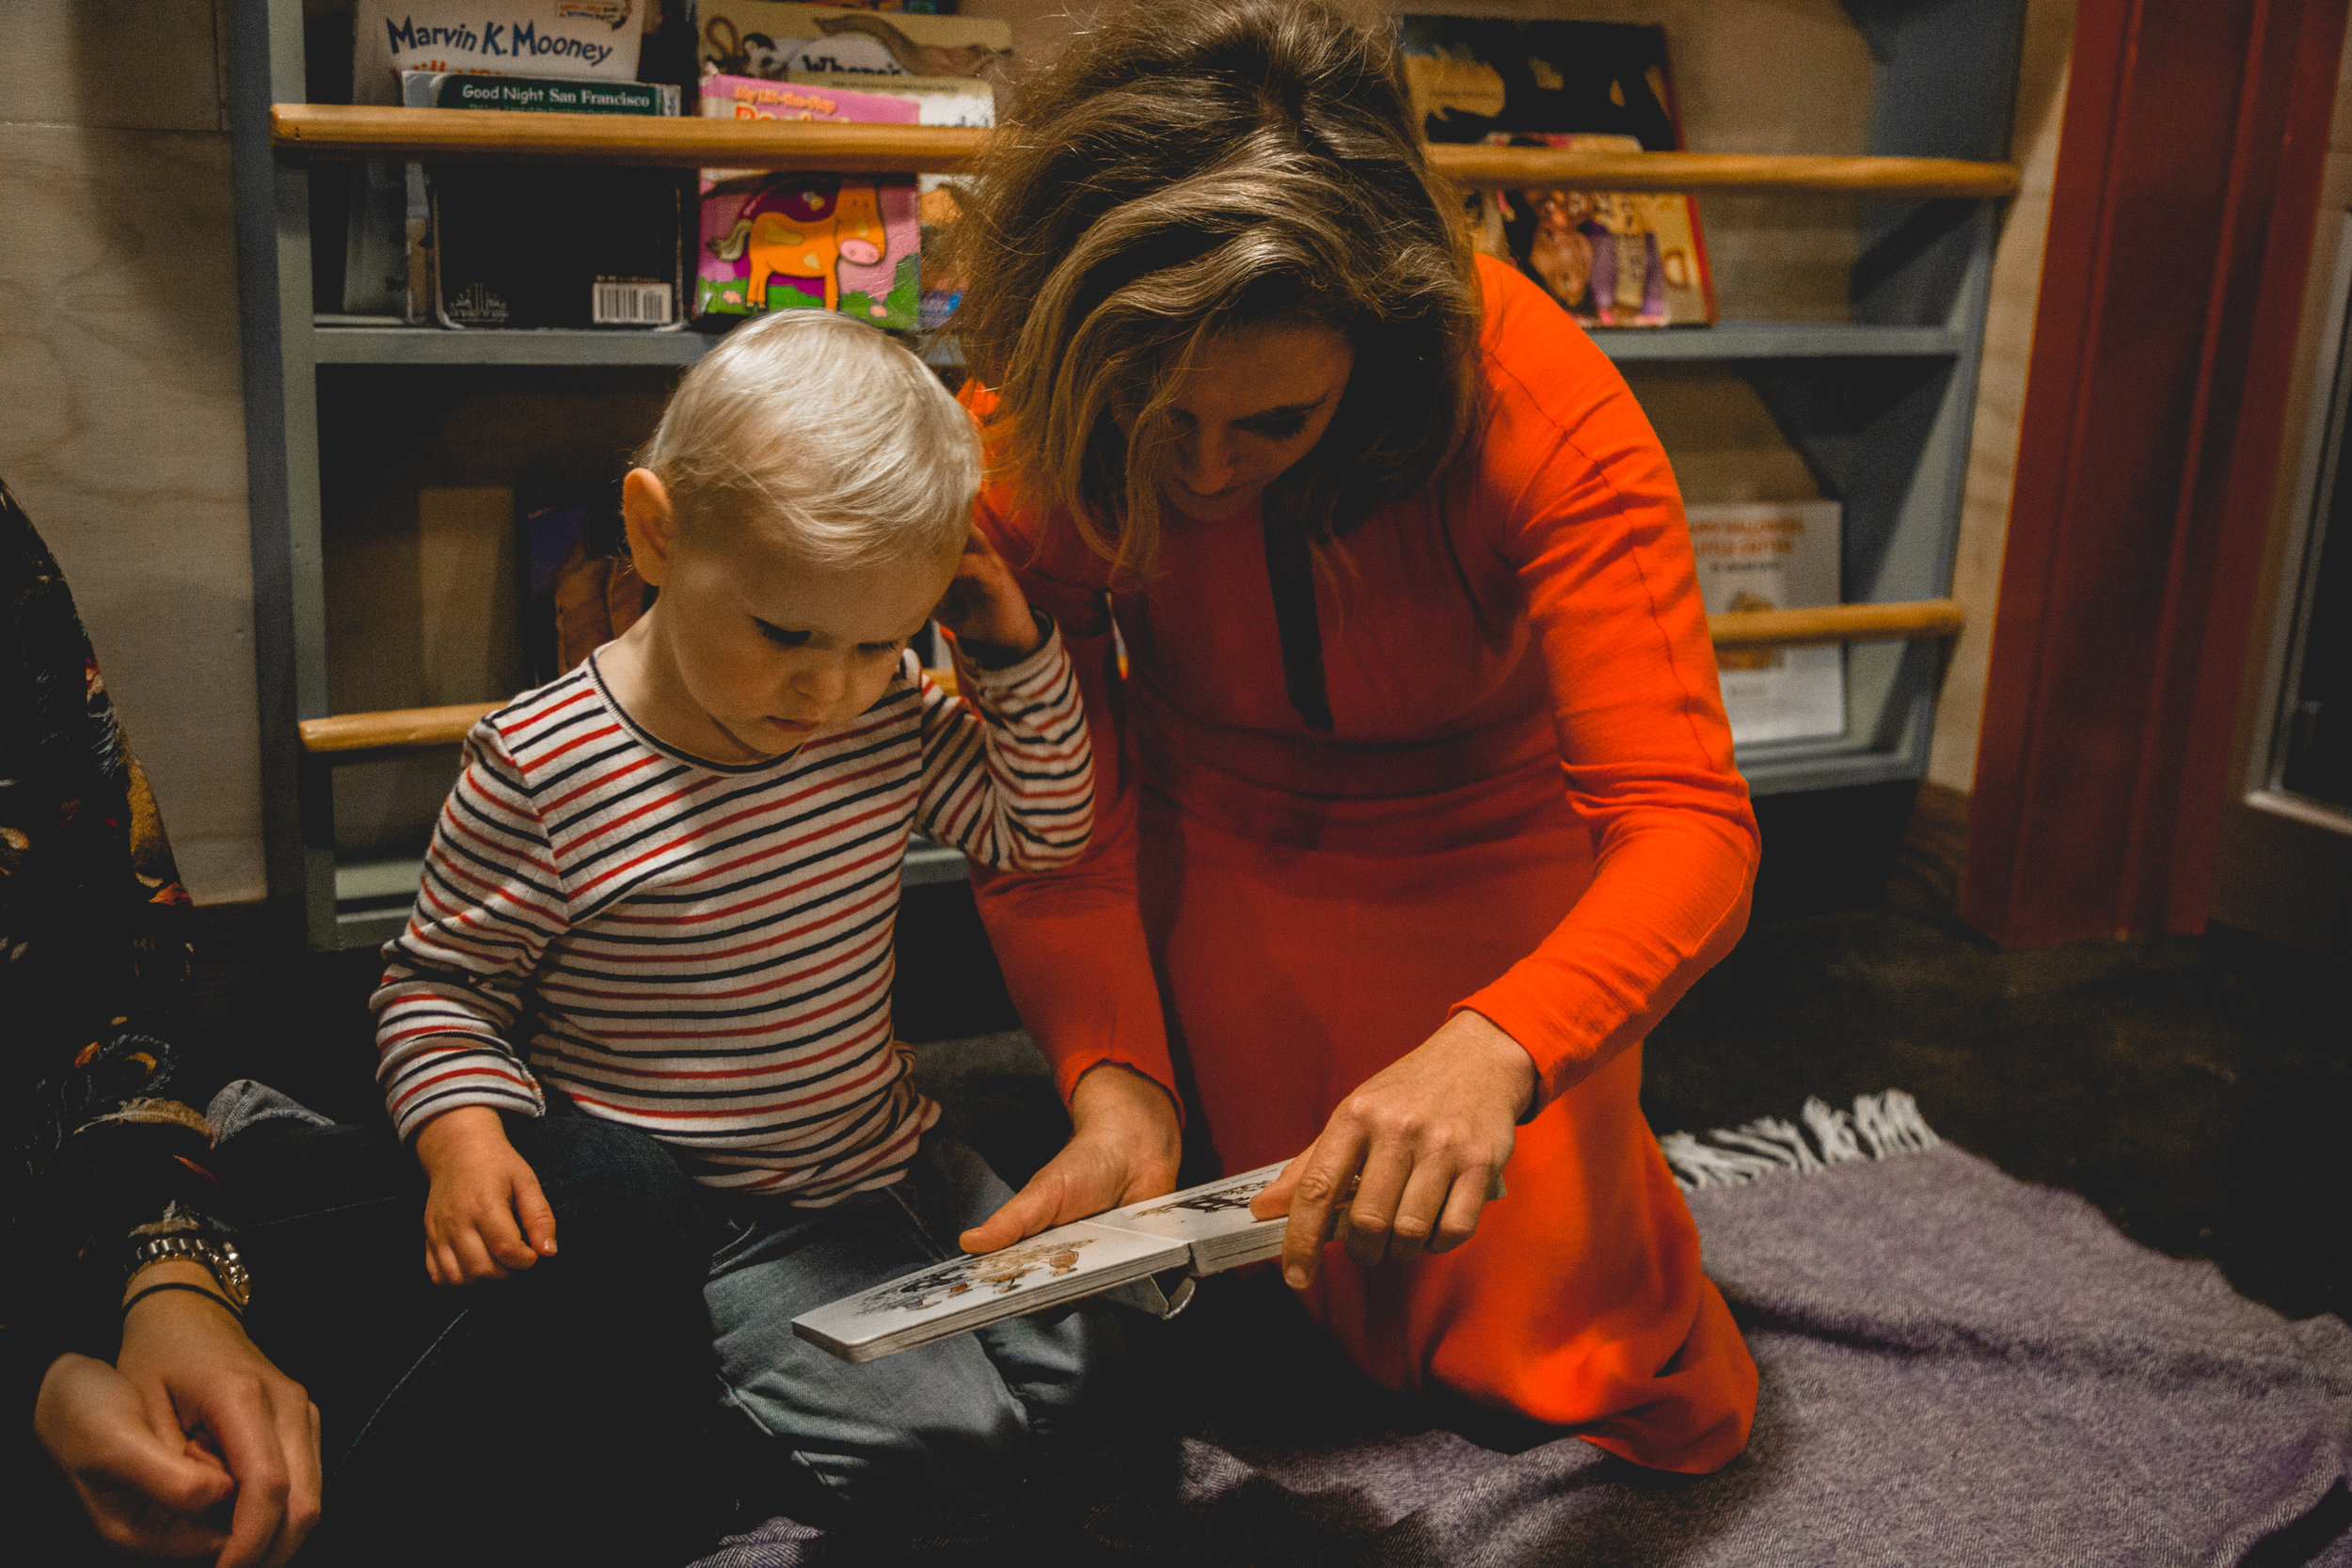 Tift Merritt pauses to read her daugther Jean a book while on tour for the Oxford American's North Carolina Music Issue. December 2018. Photo by Sandra Davidson